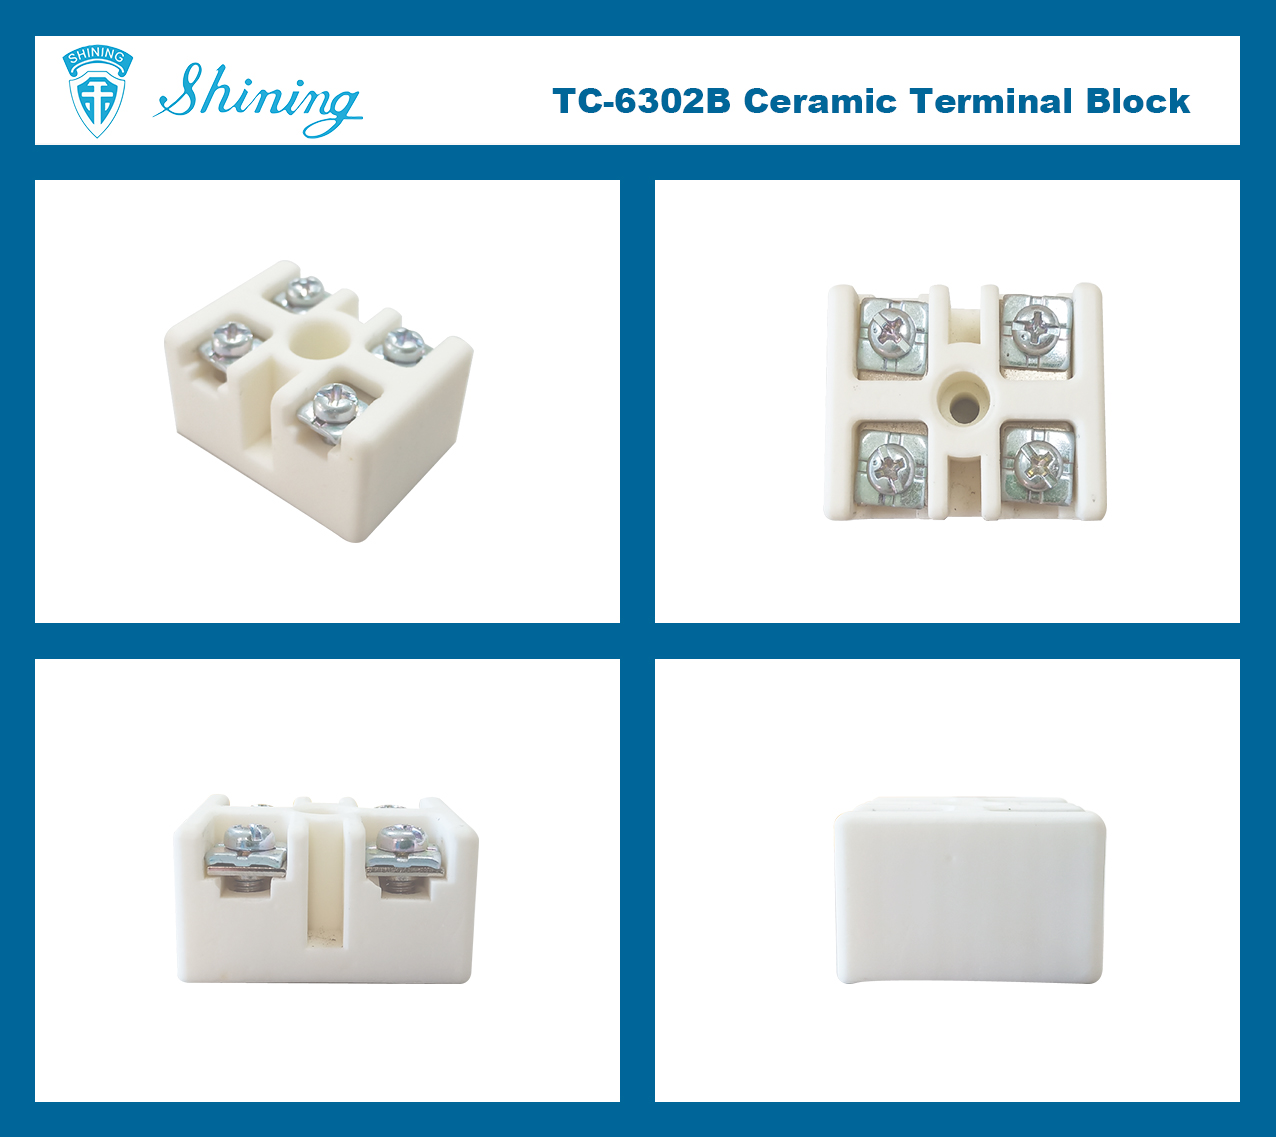 TC-6302B 30A 2 Pin Porcelain Ceramic Terminal Block